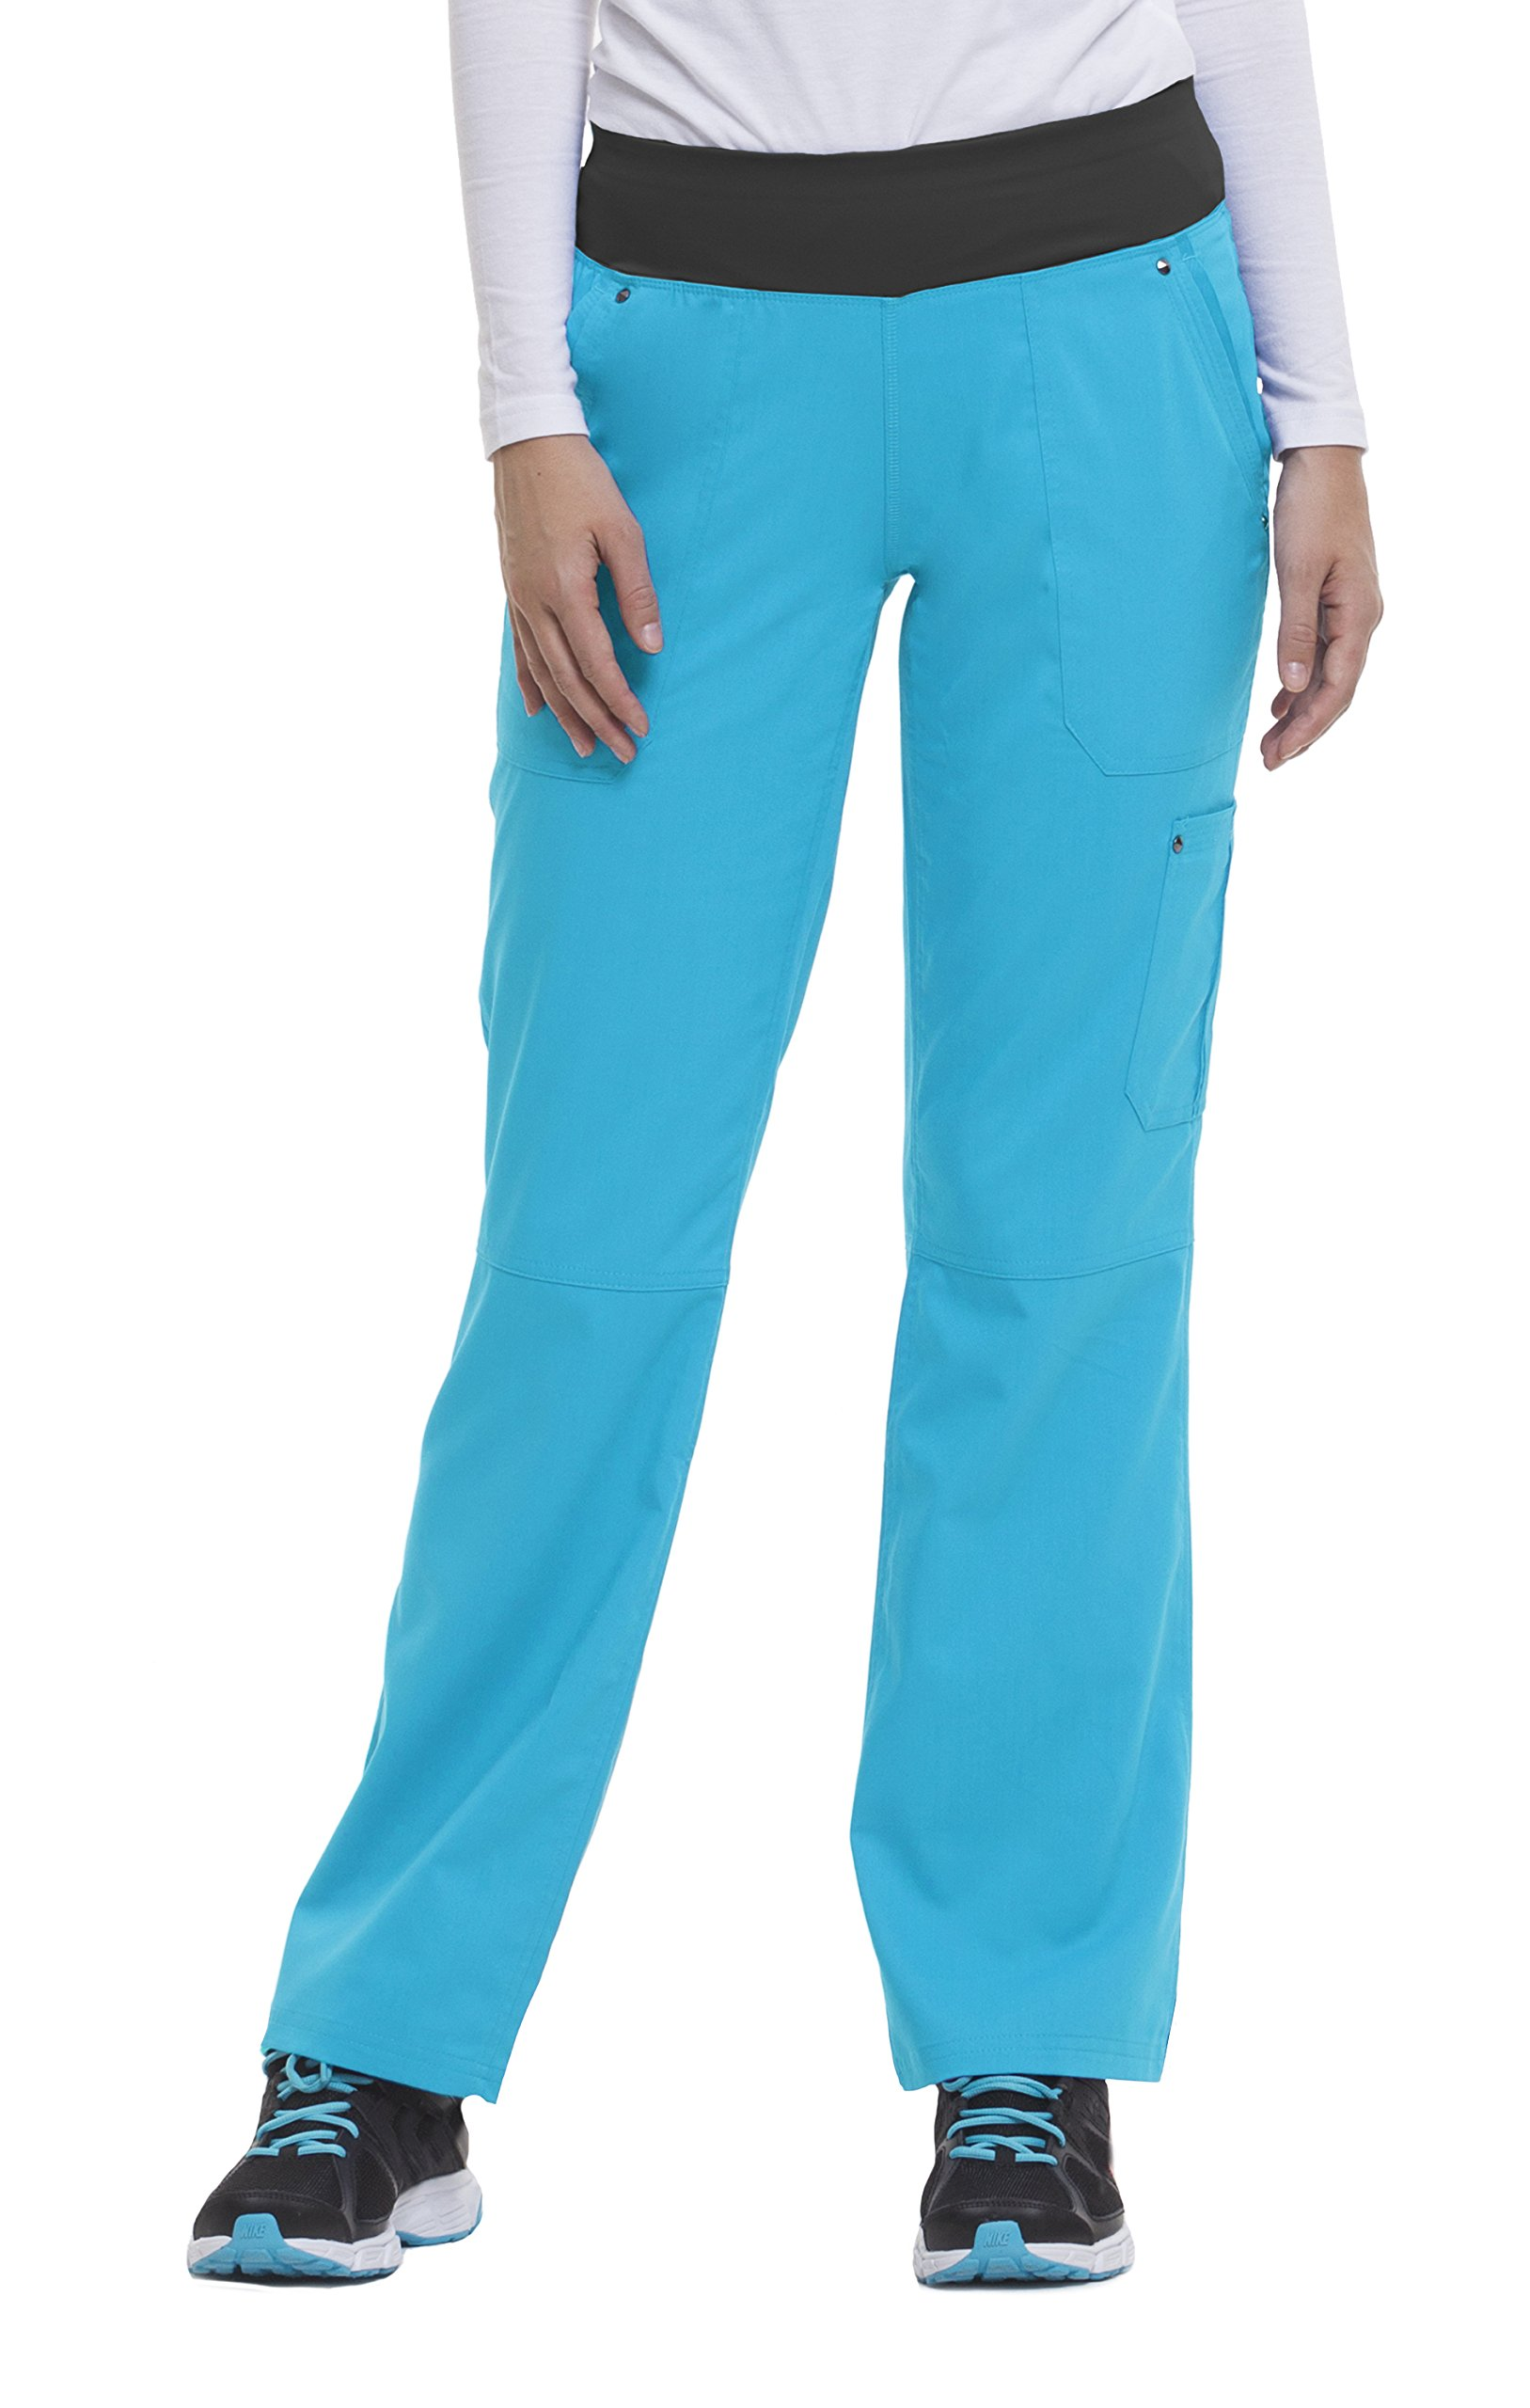 healing hands Purple Label Yoga Women's Tori 9133 5 Pocket Knit Waist Pant Turquoise-XX-Small Petite